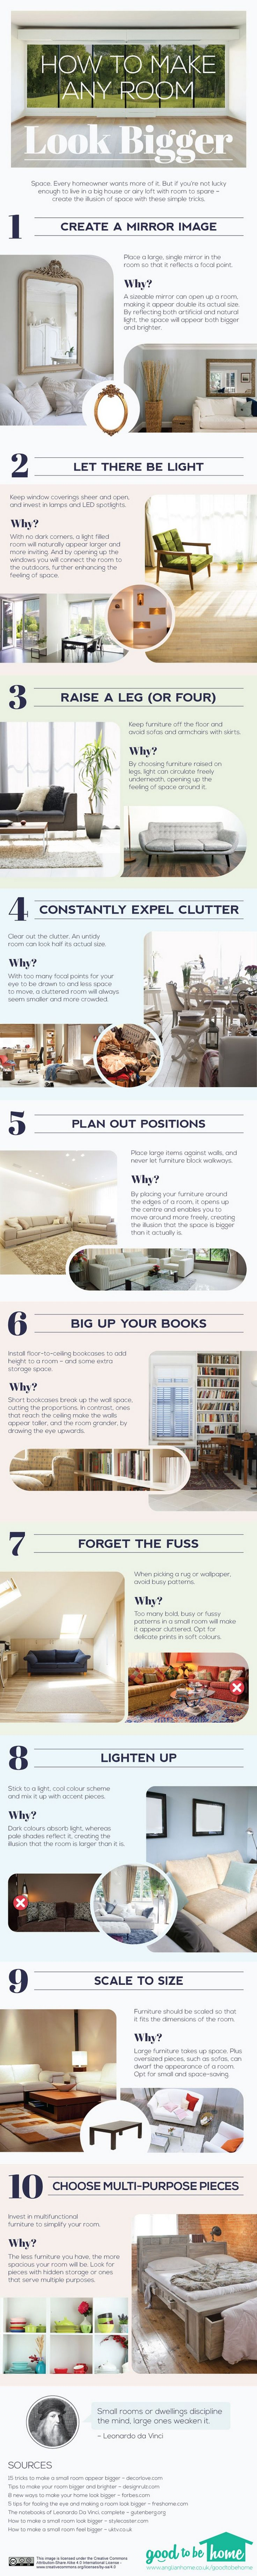 Smaller spaces ideas #10 looks perfect for my room with limited space & storage *heart eyes*